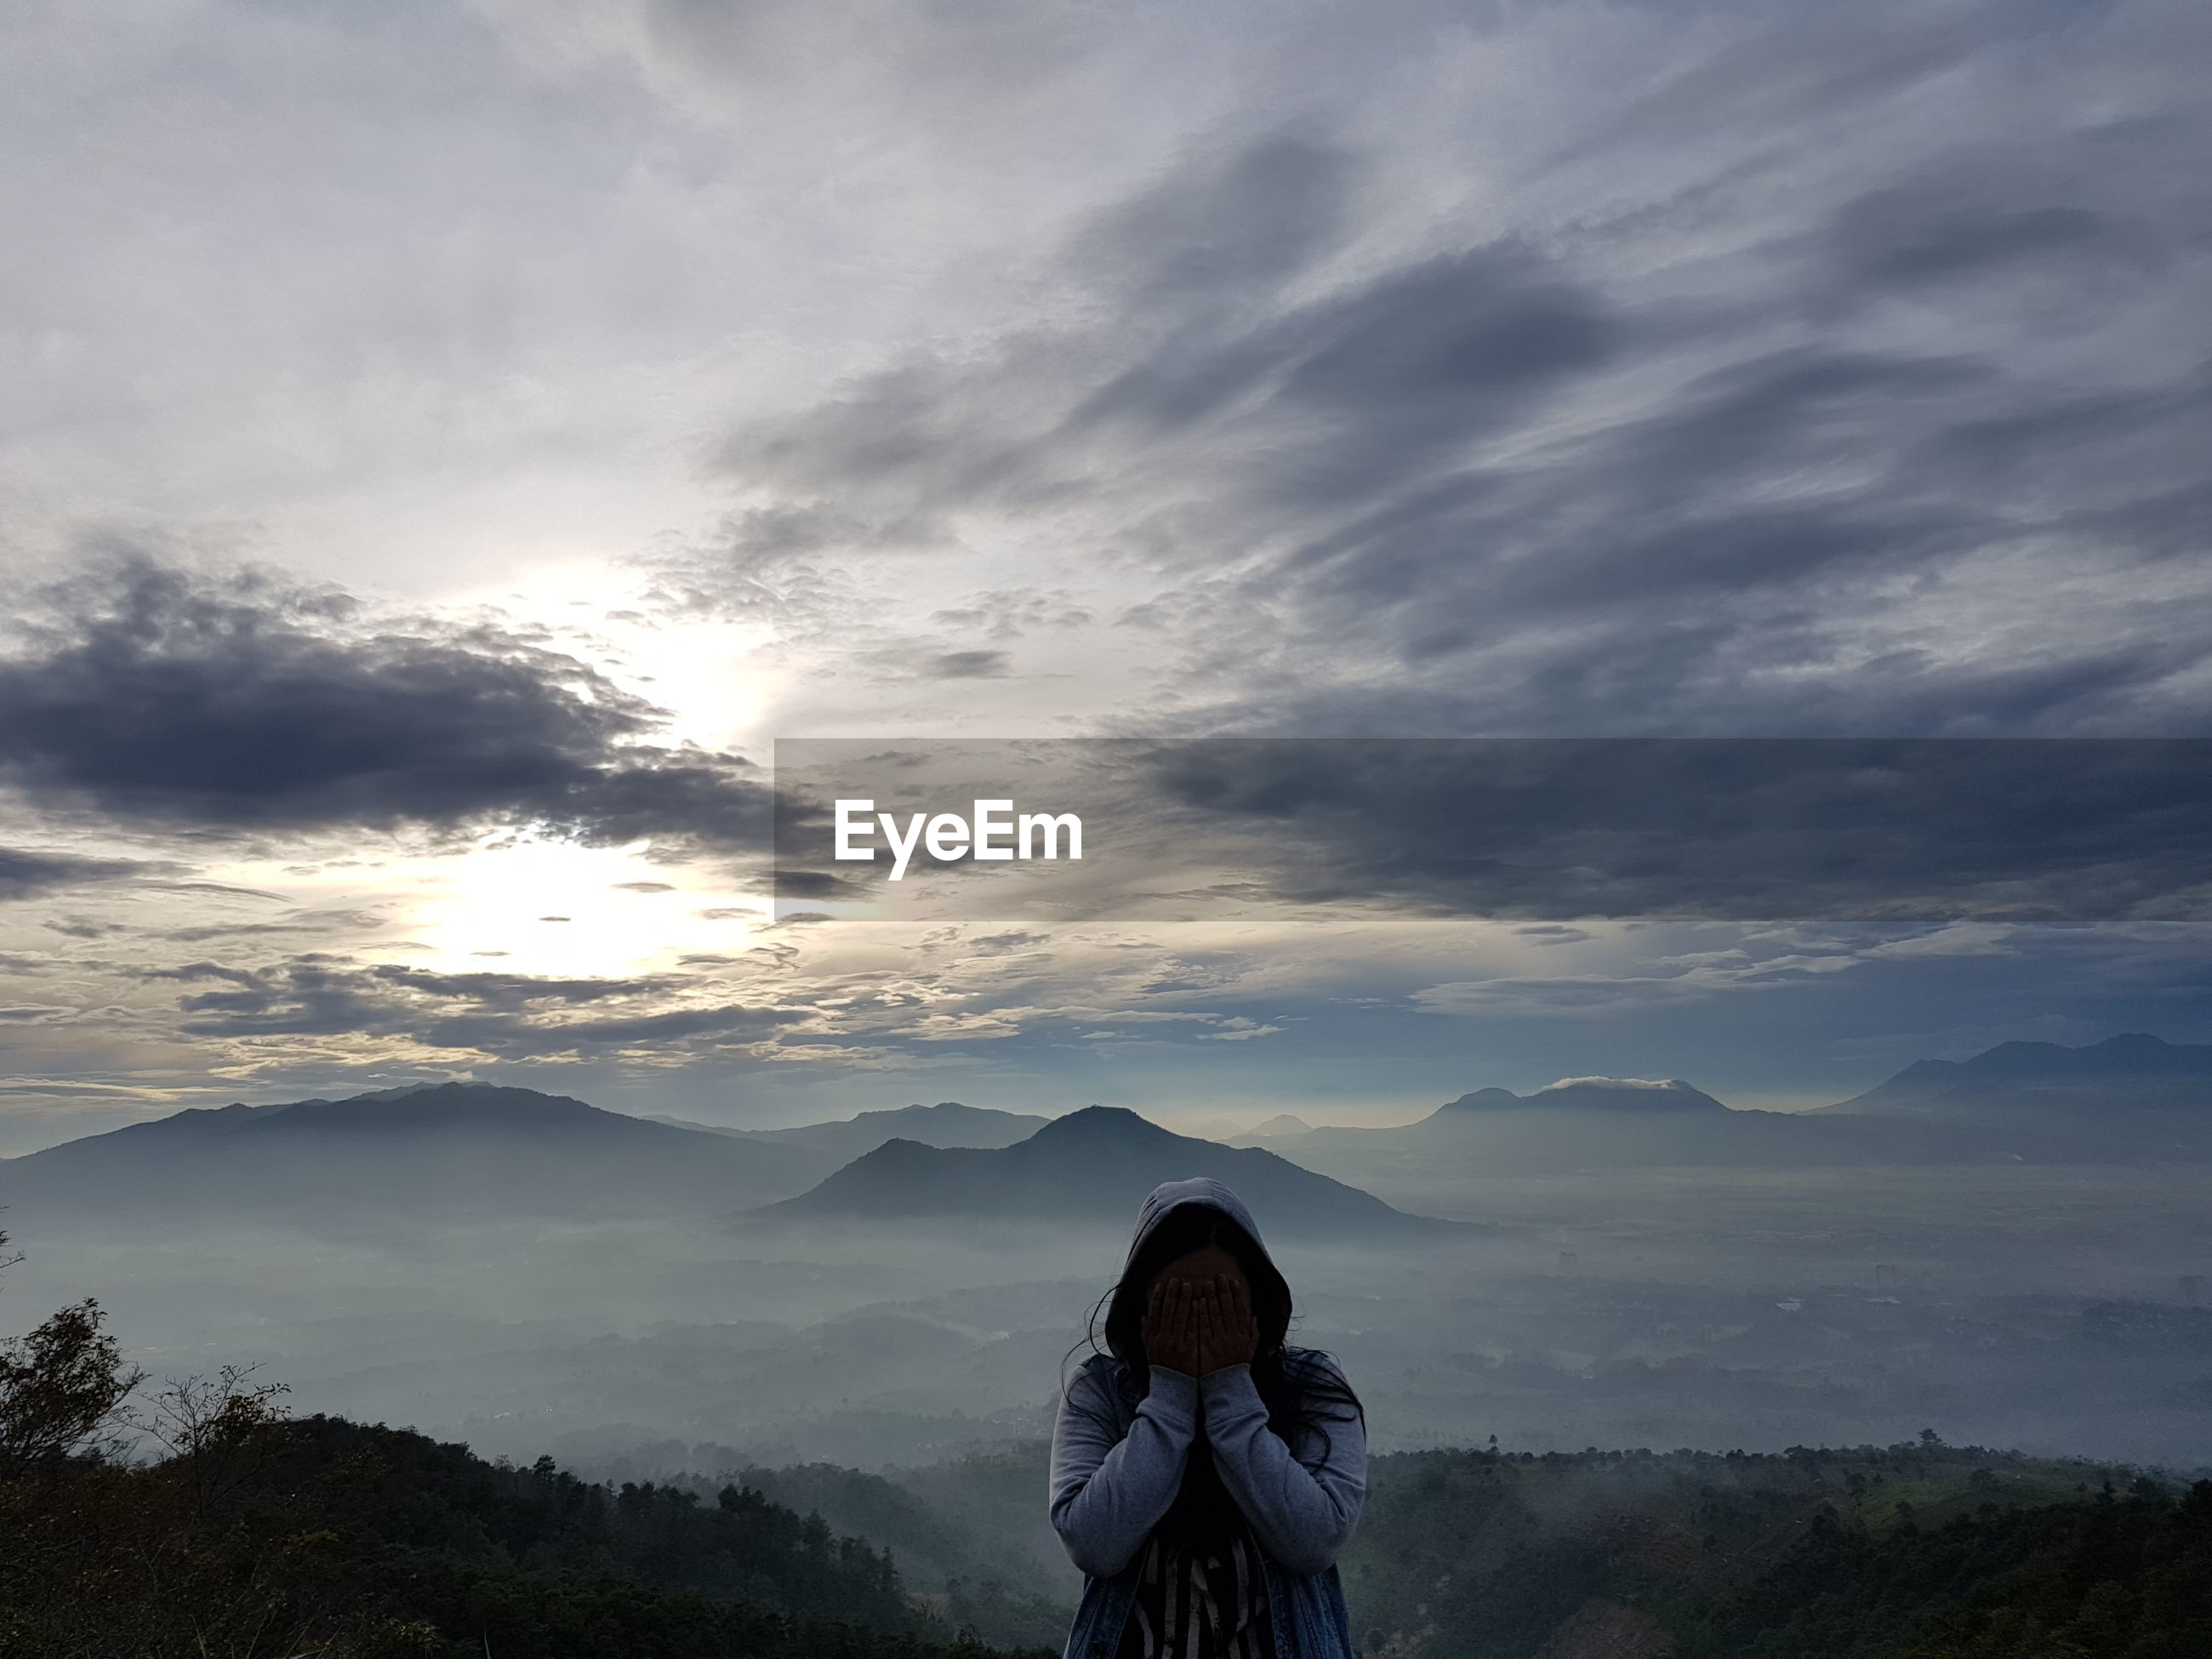 Woman covering face standing on mountains against cloudy sky